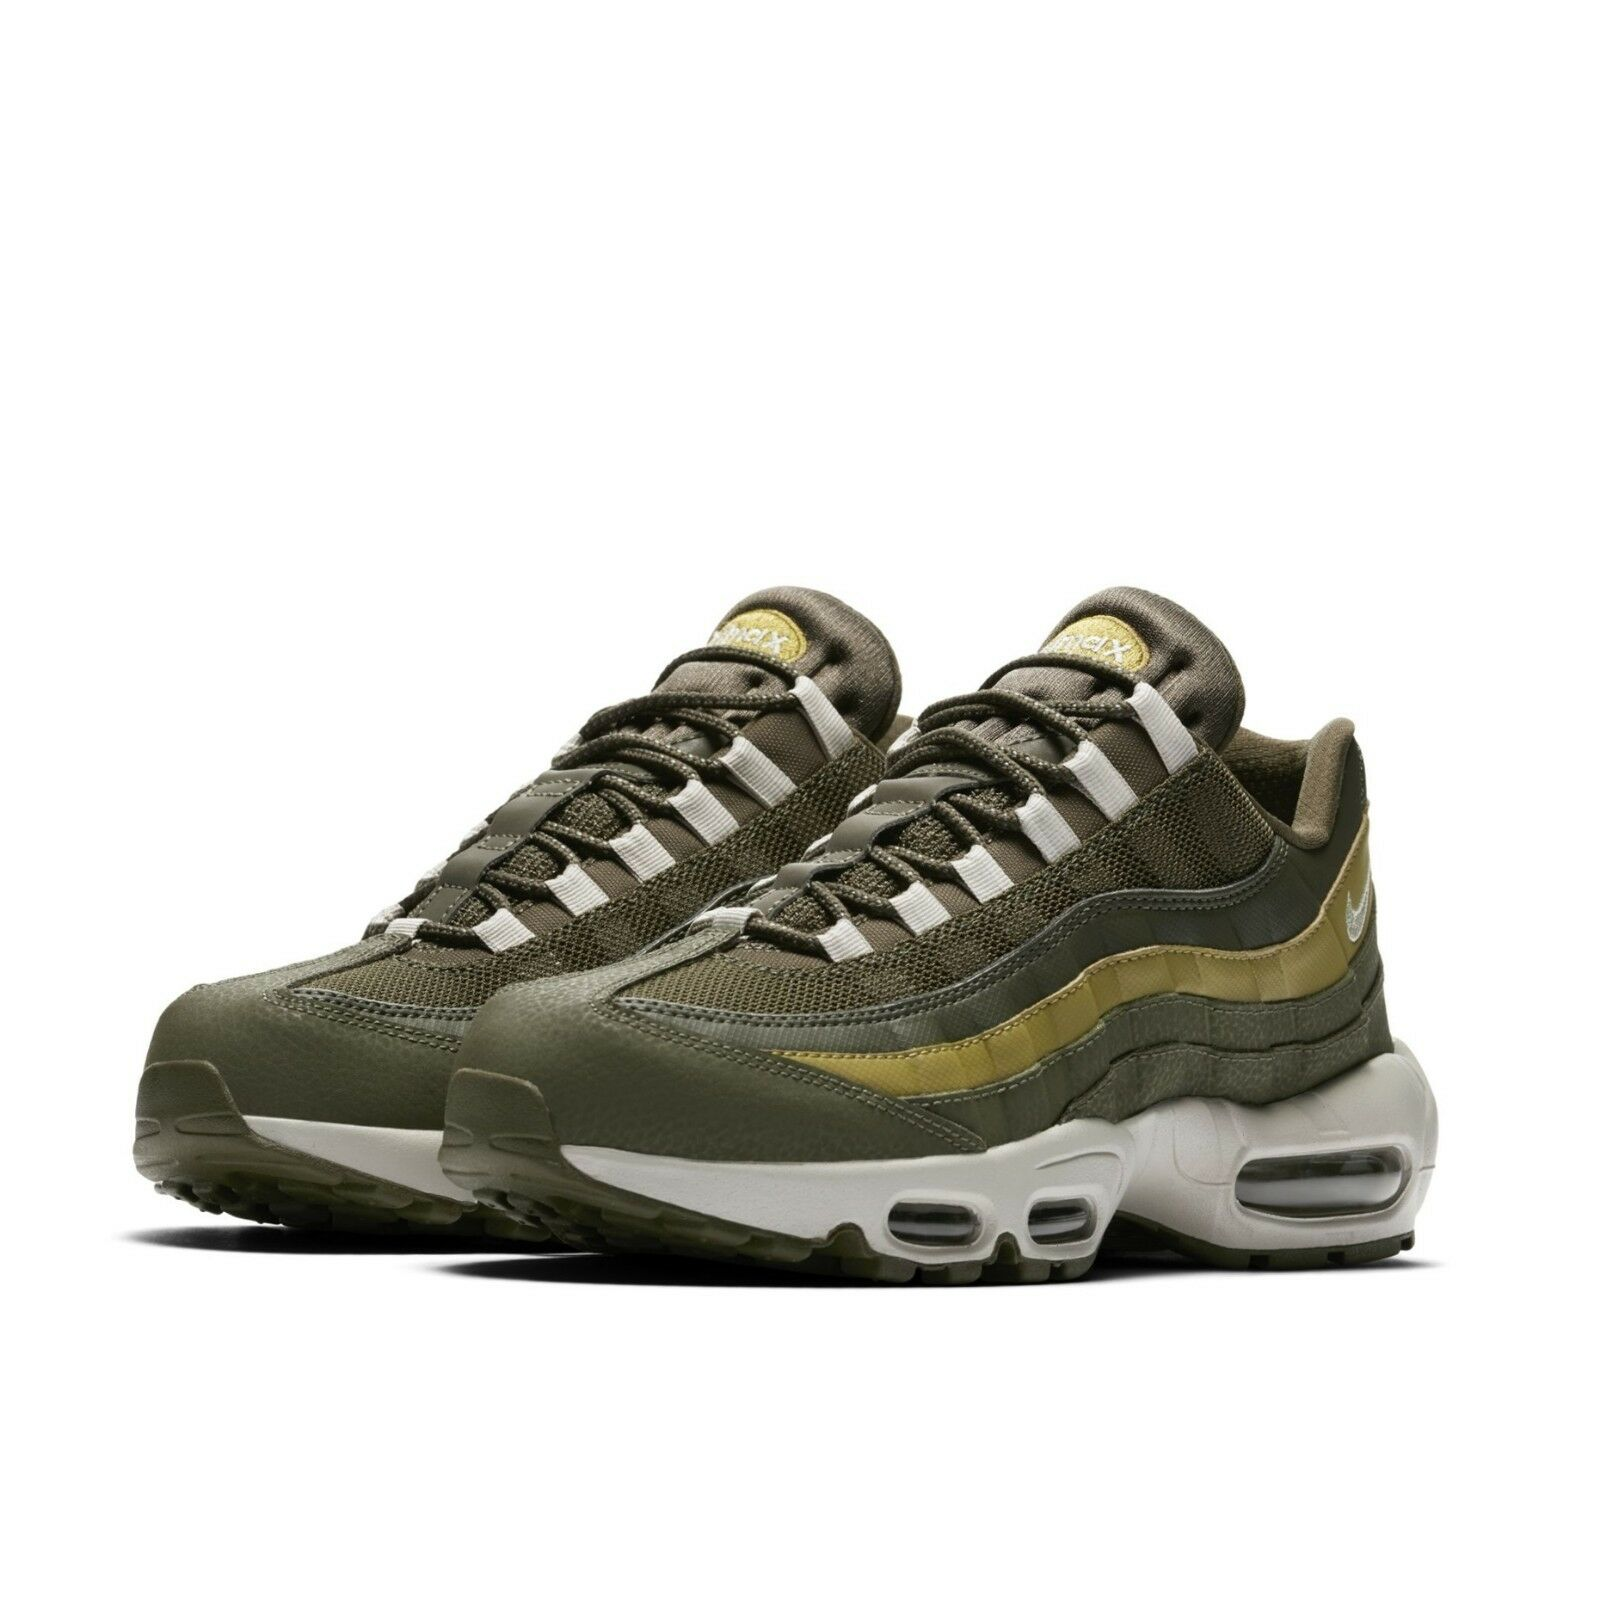 Nike Mens Air Max 95 Essential Olive Green Brown Running shoes 749766-303